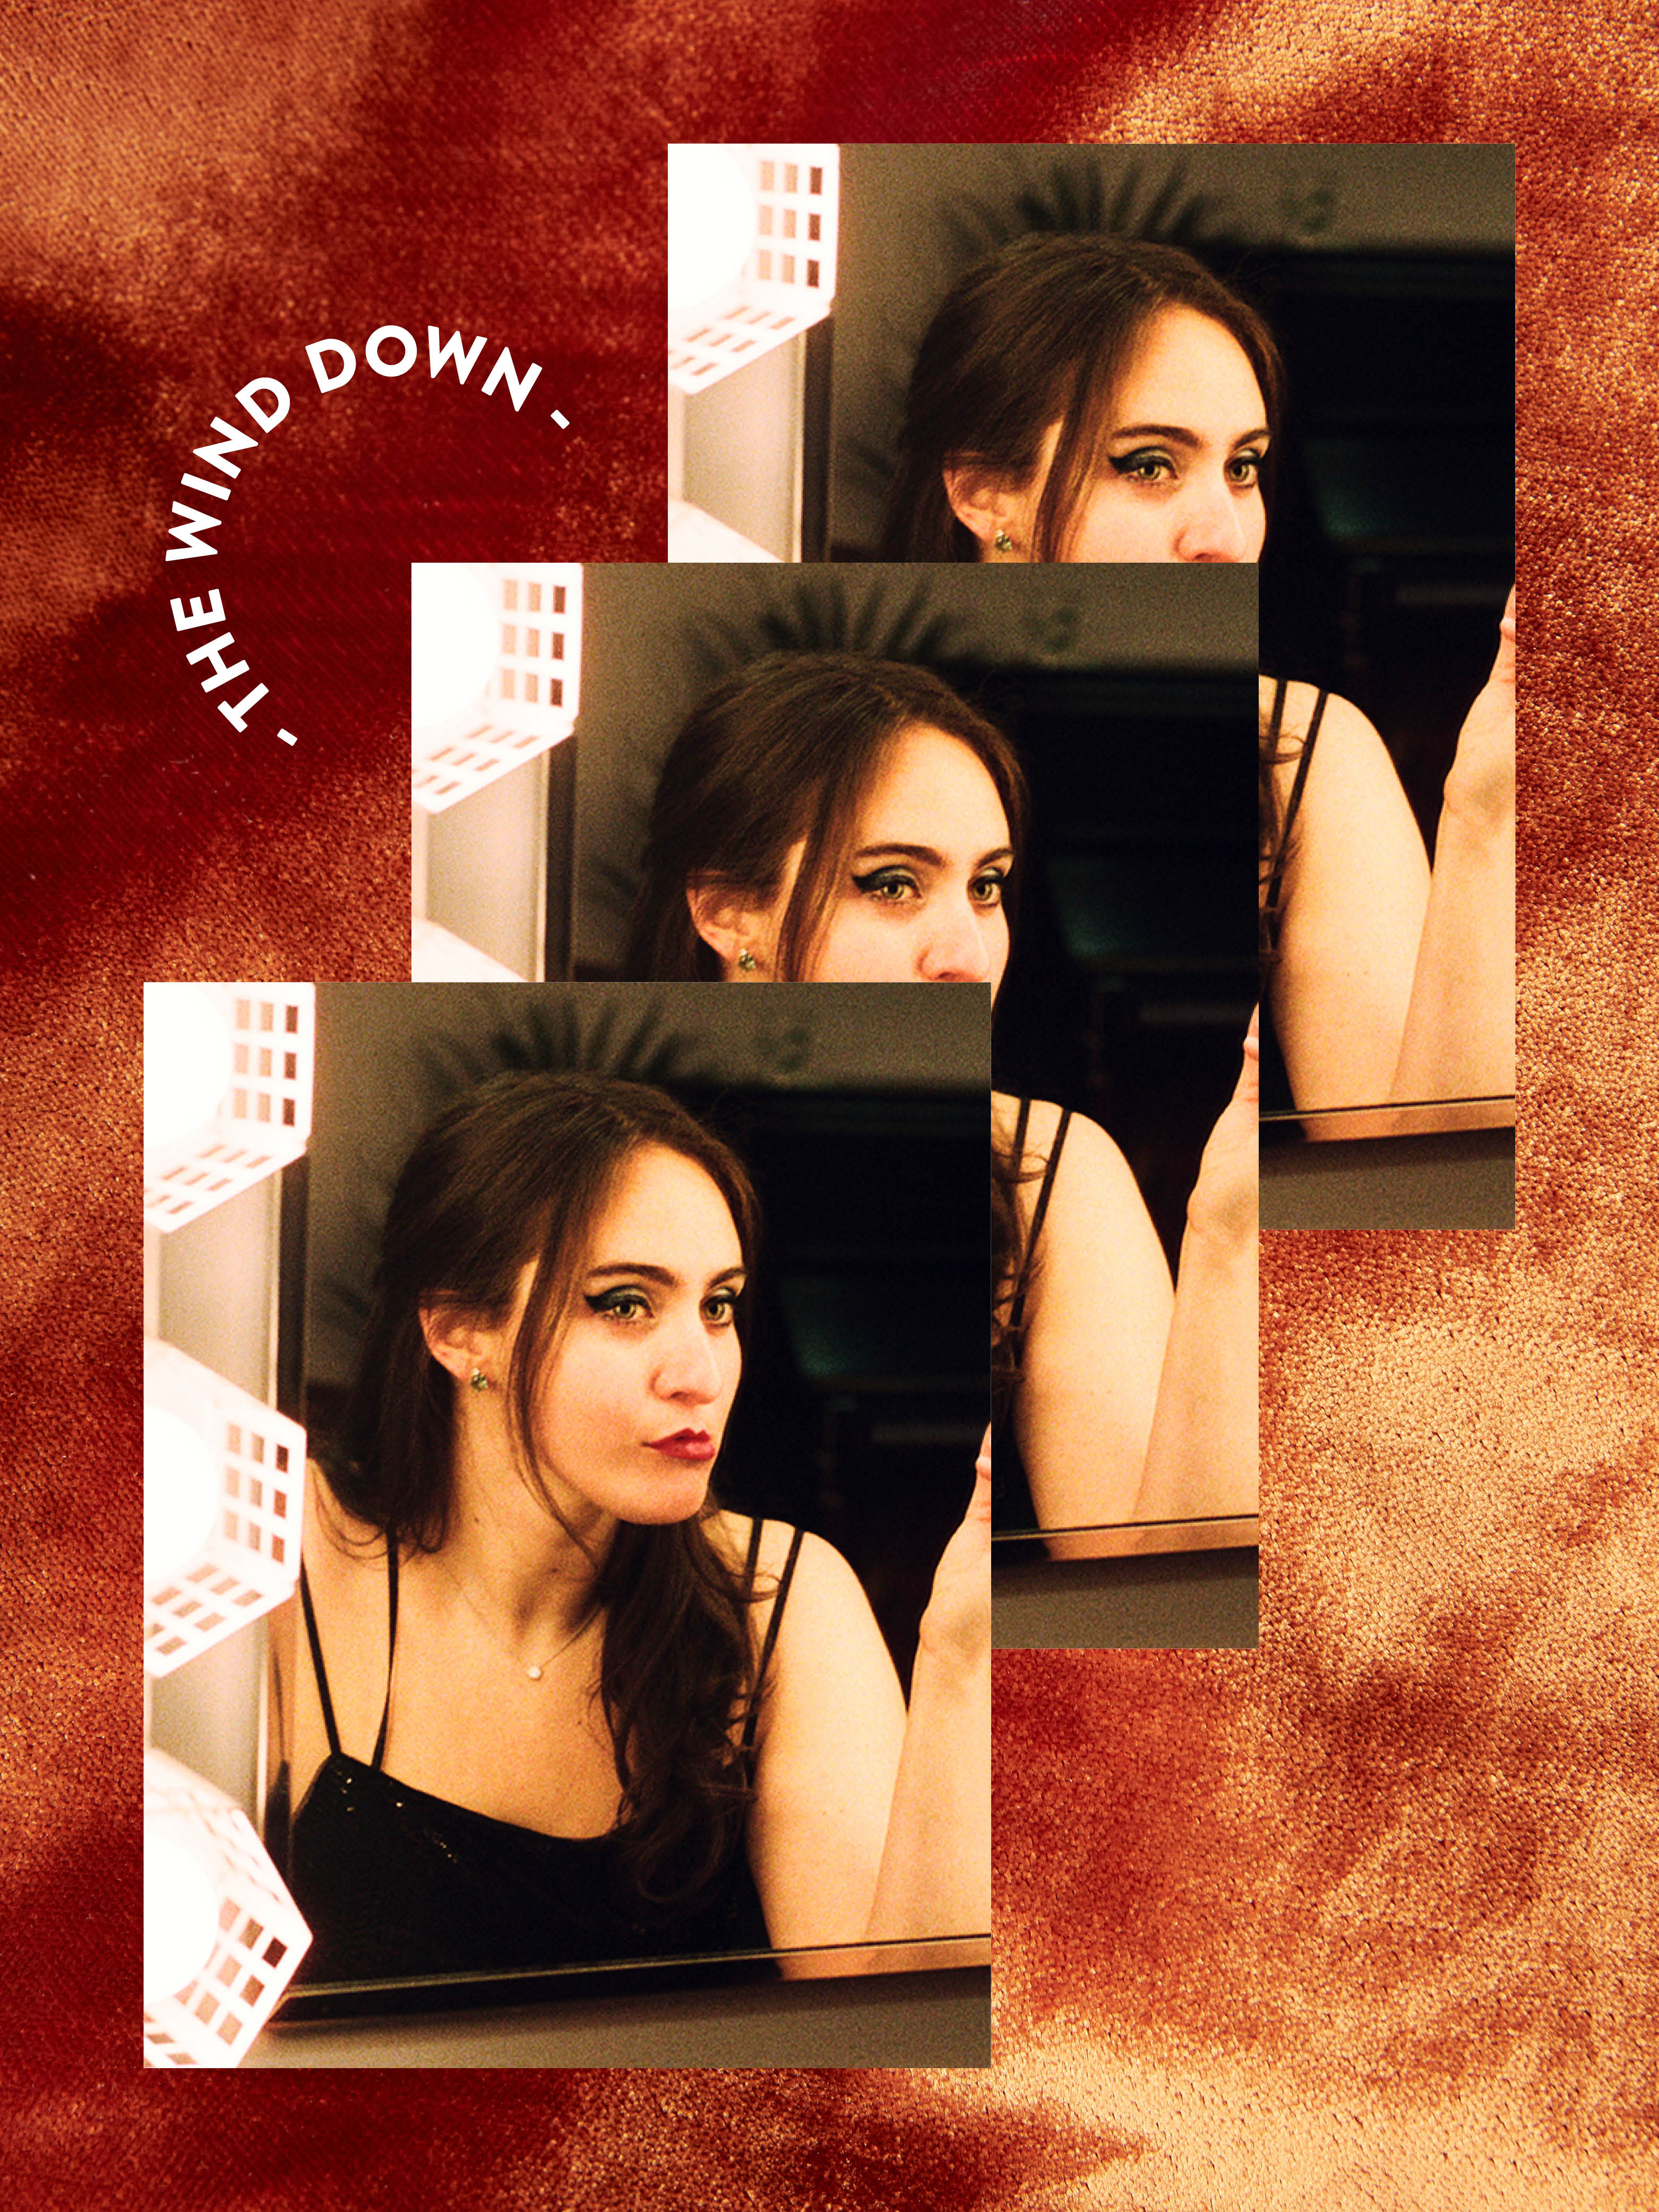 Catherine-Cohen-wind-down-domino